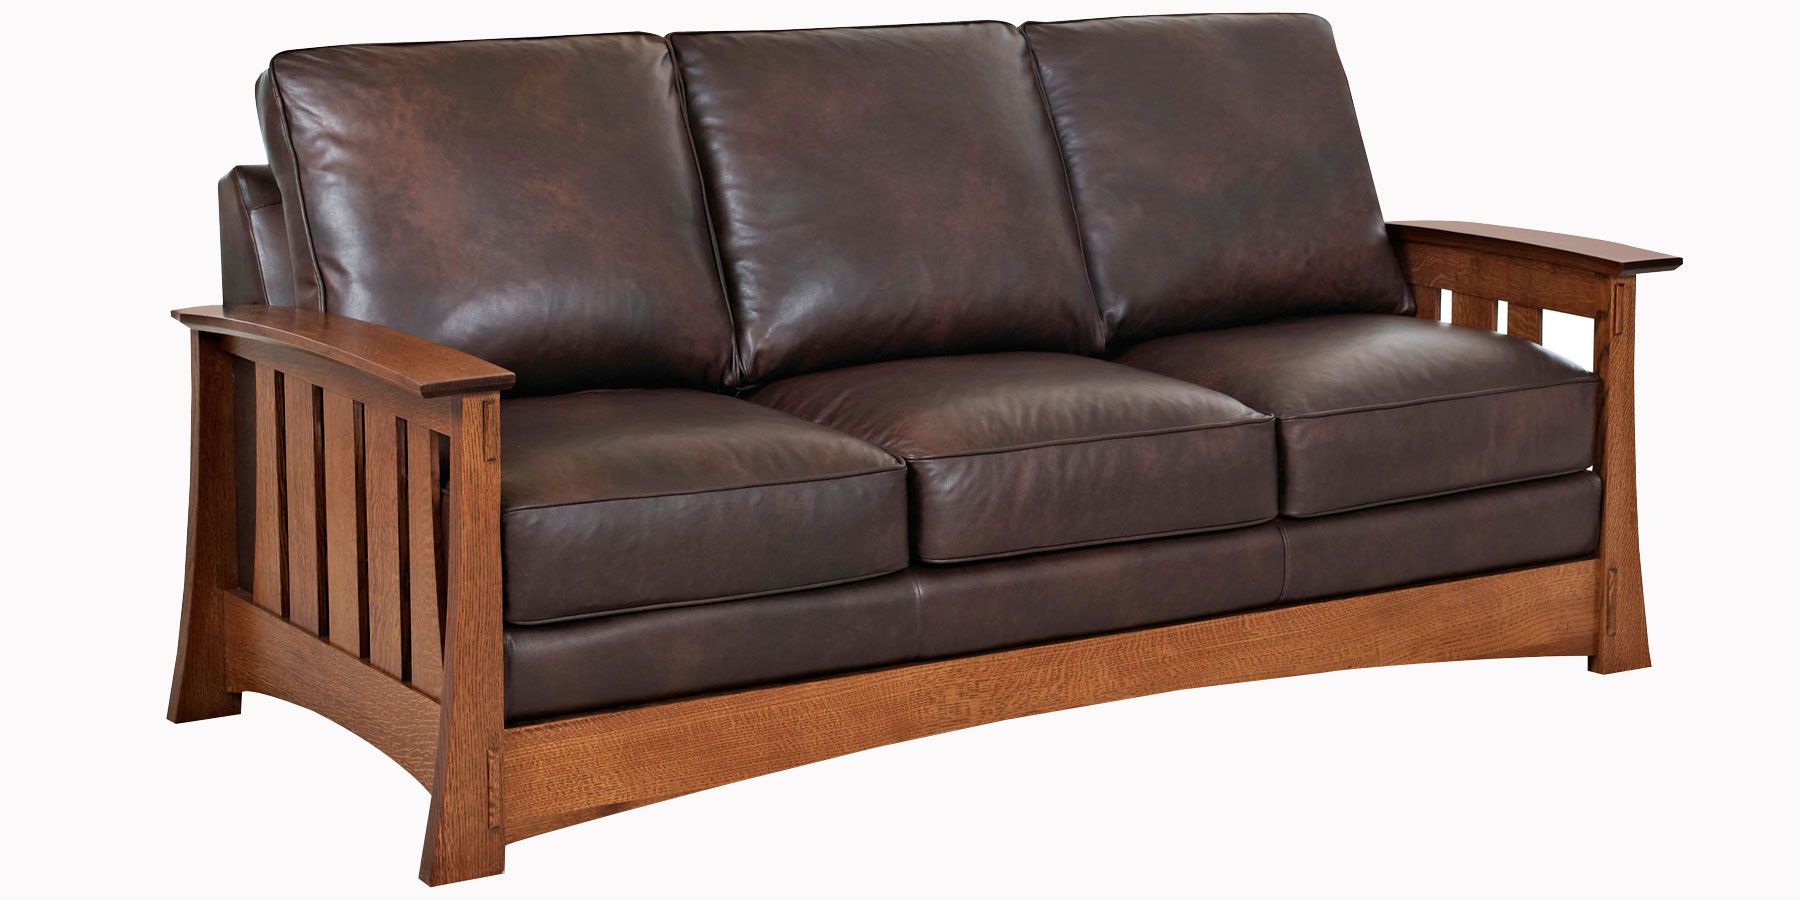 craftsman leather chair stockton mission craftsman style leather seating 13570 | 3f2101435b0d4eed21ab0d6f4feeccbc